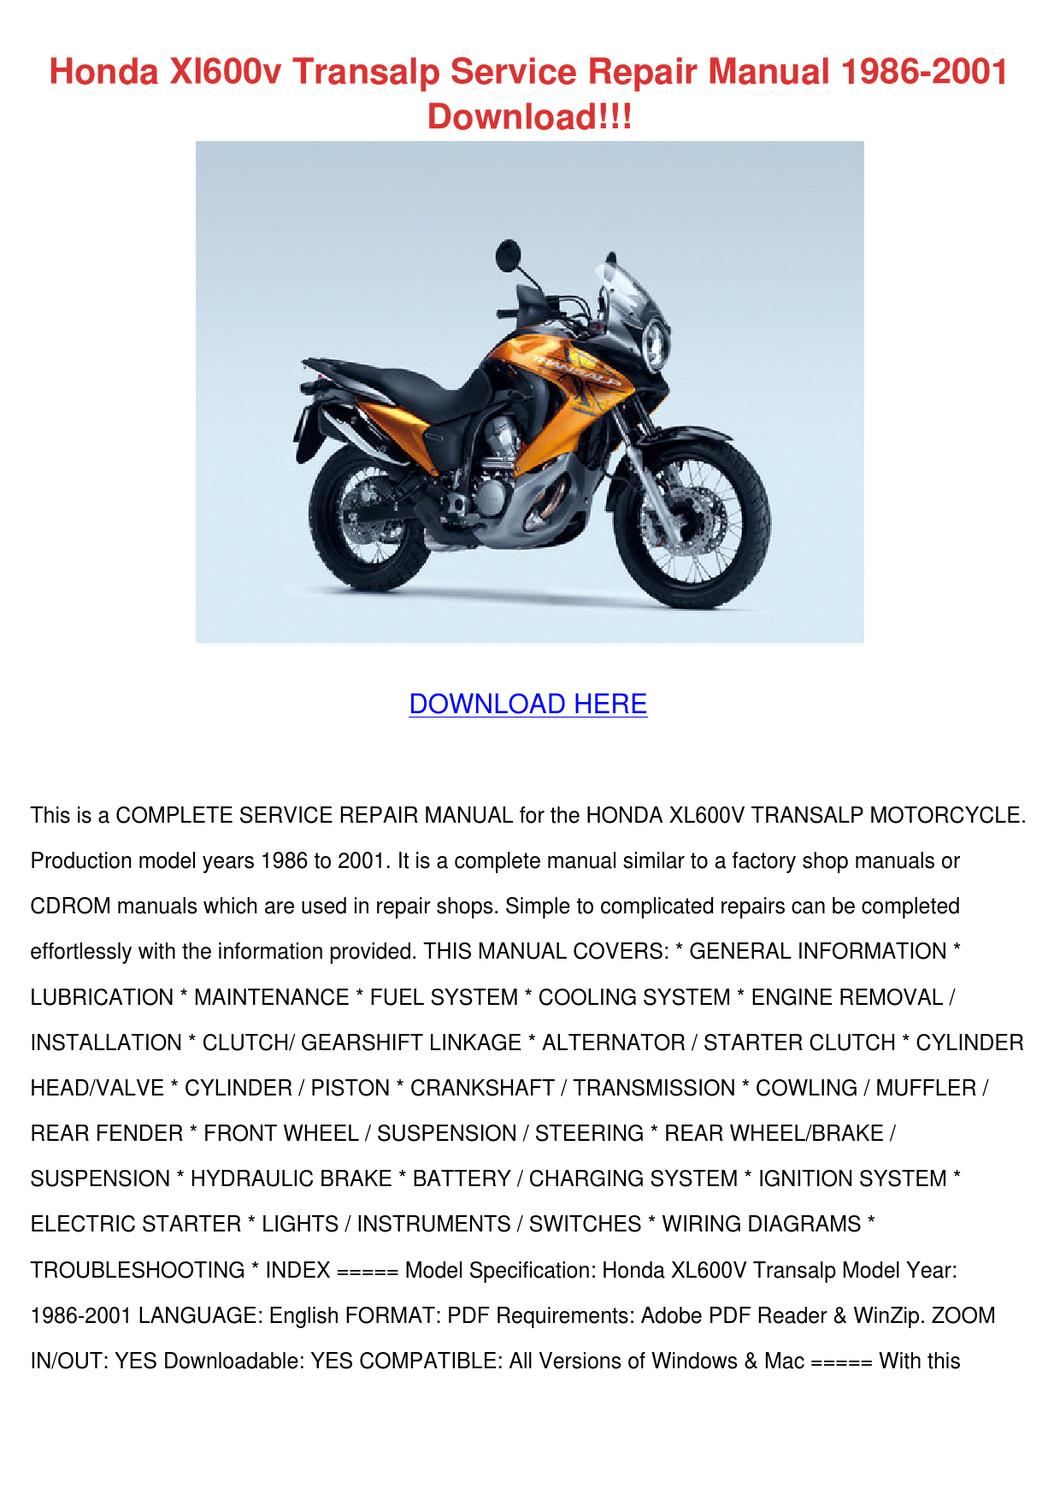 Honda Xl600v Transalp Service Repair Manual 1 By Shameka